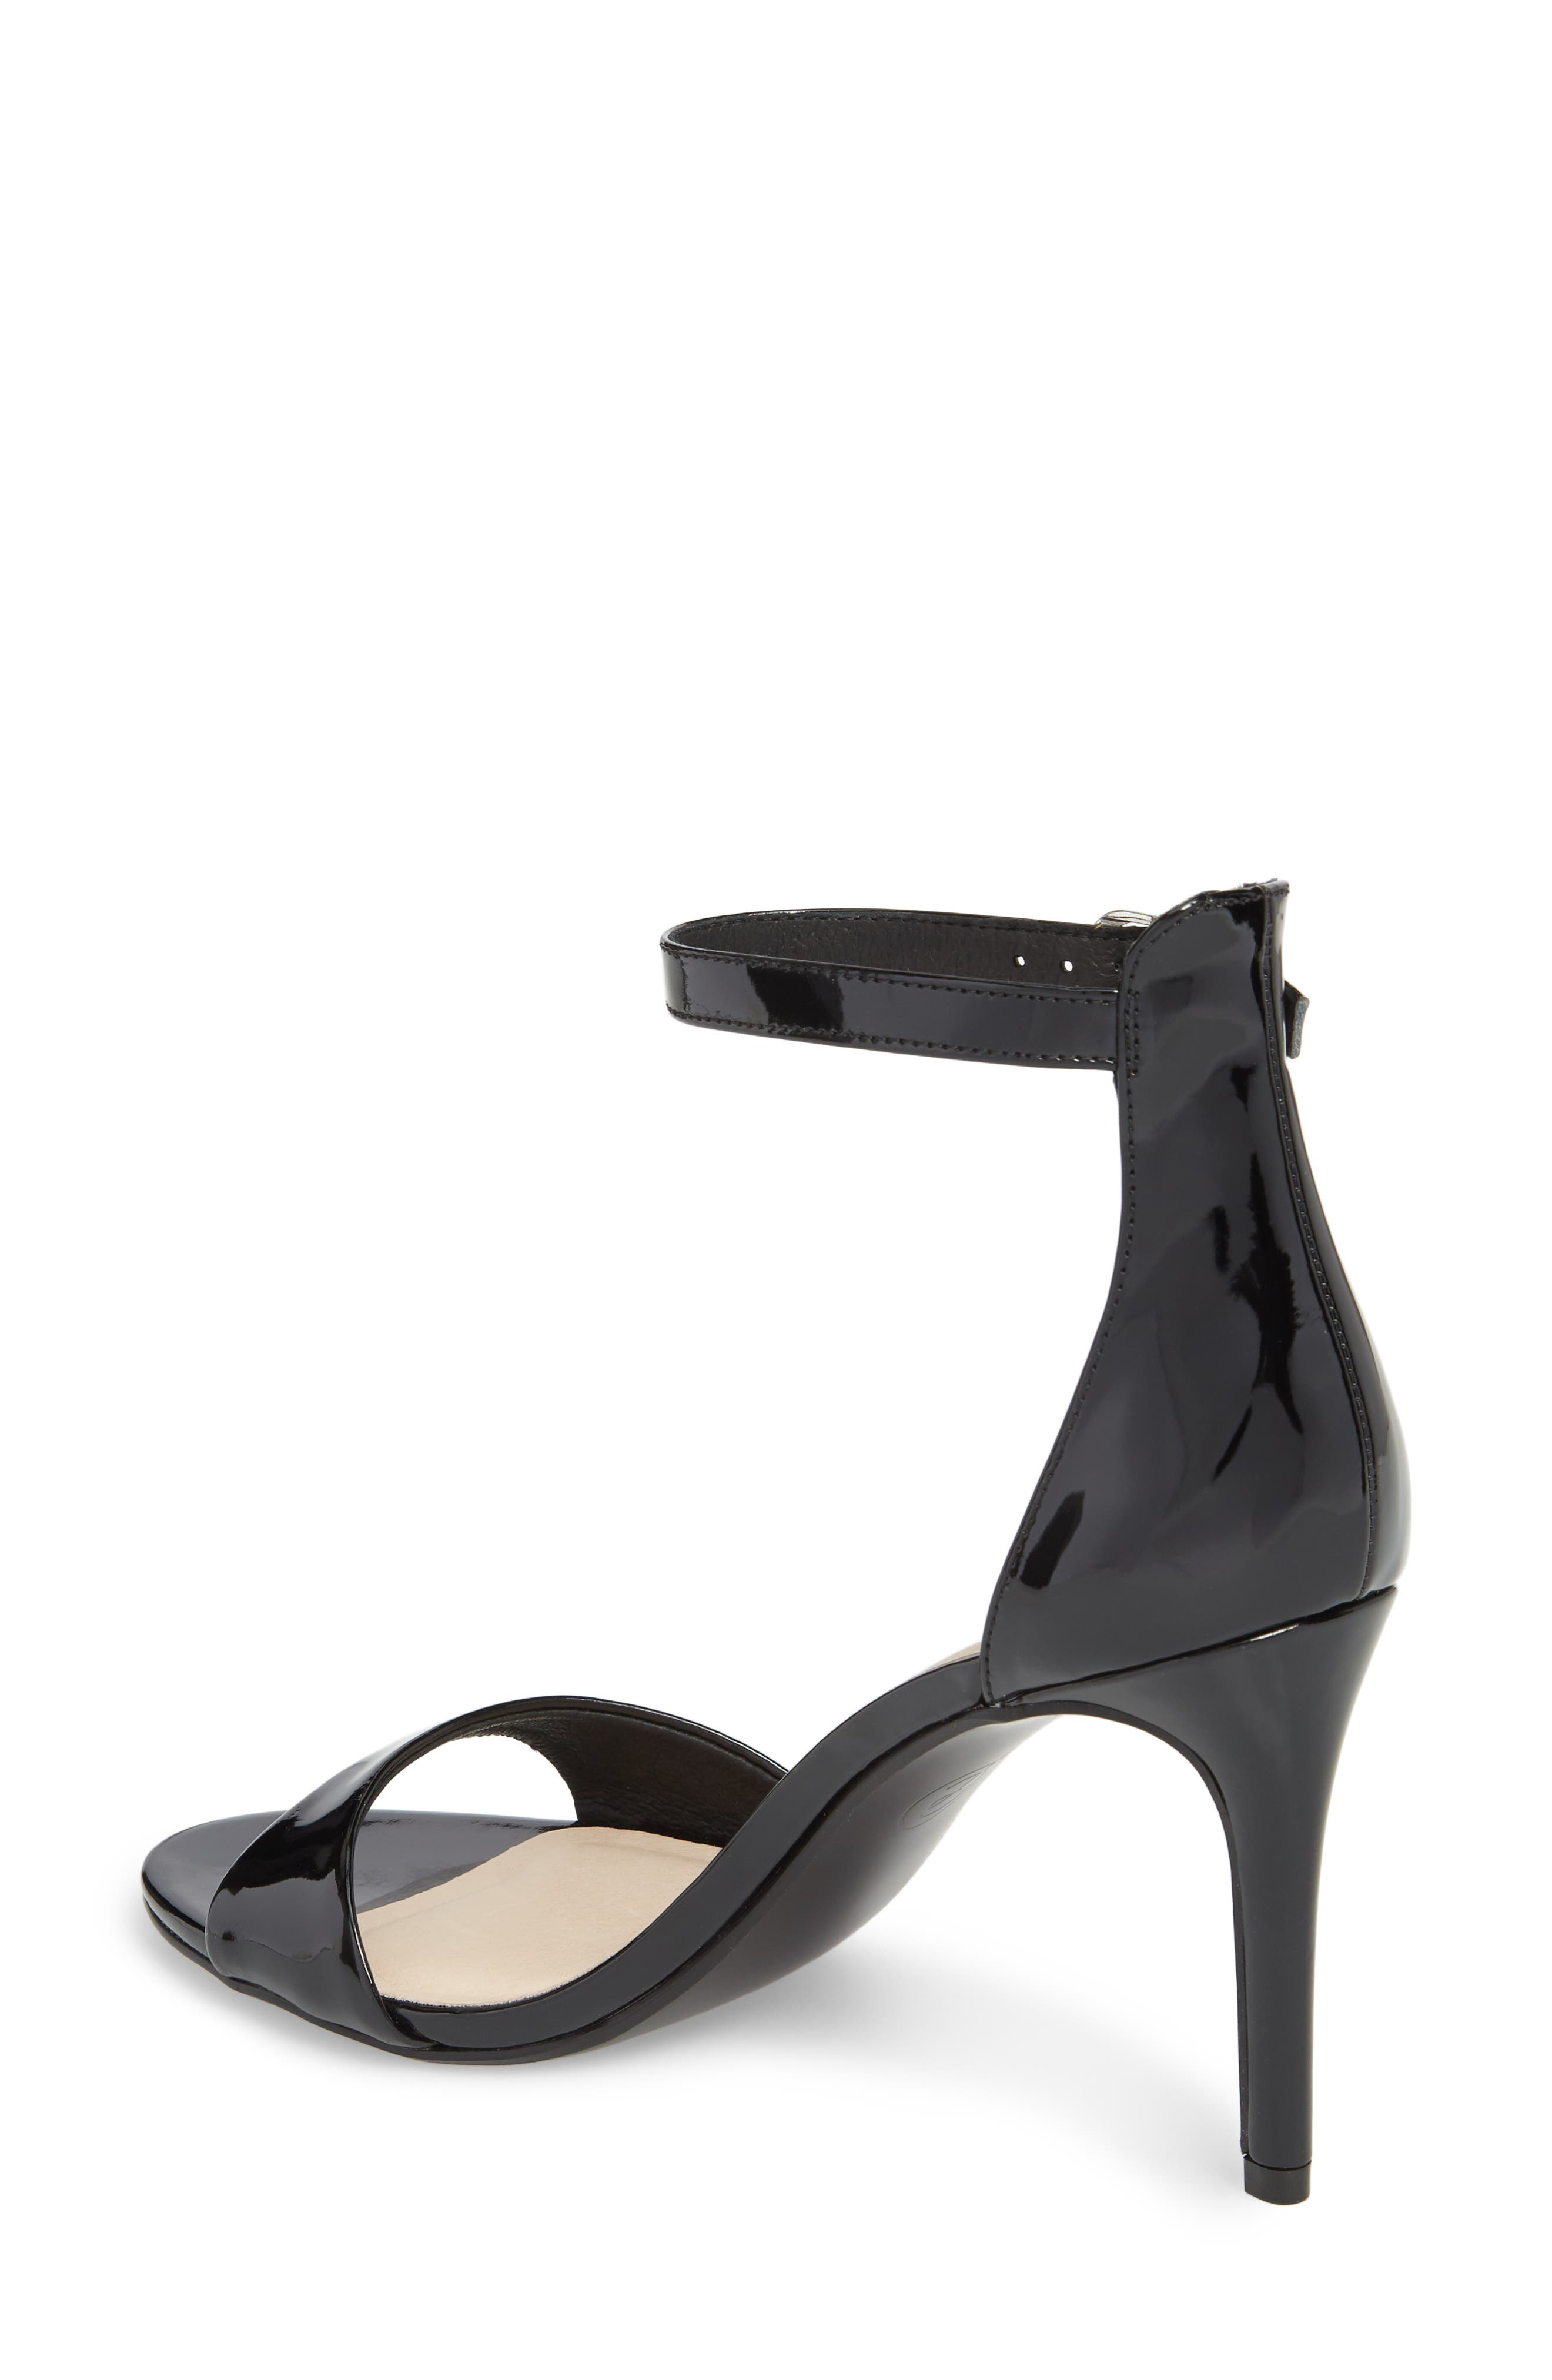 Simone Ankle Strap Sandal,                             Alternate thumbnail 2, color,                             001